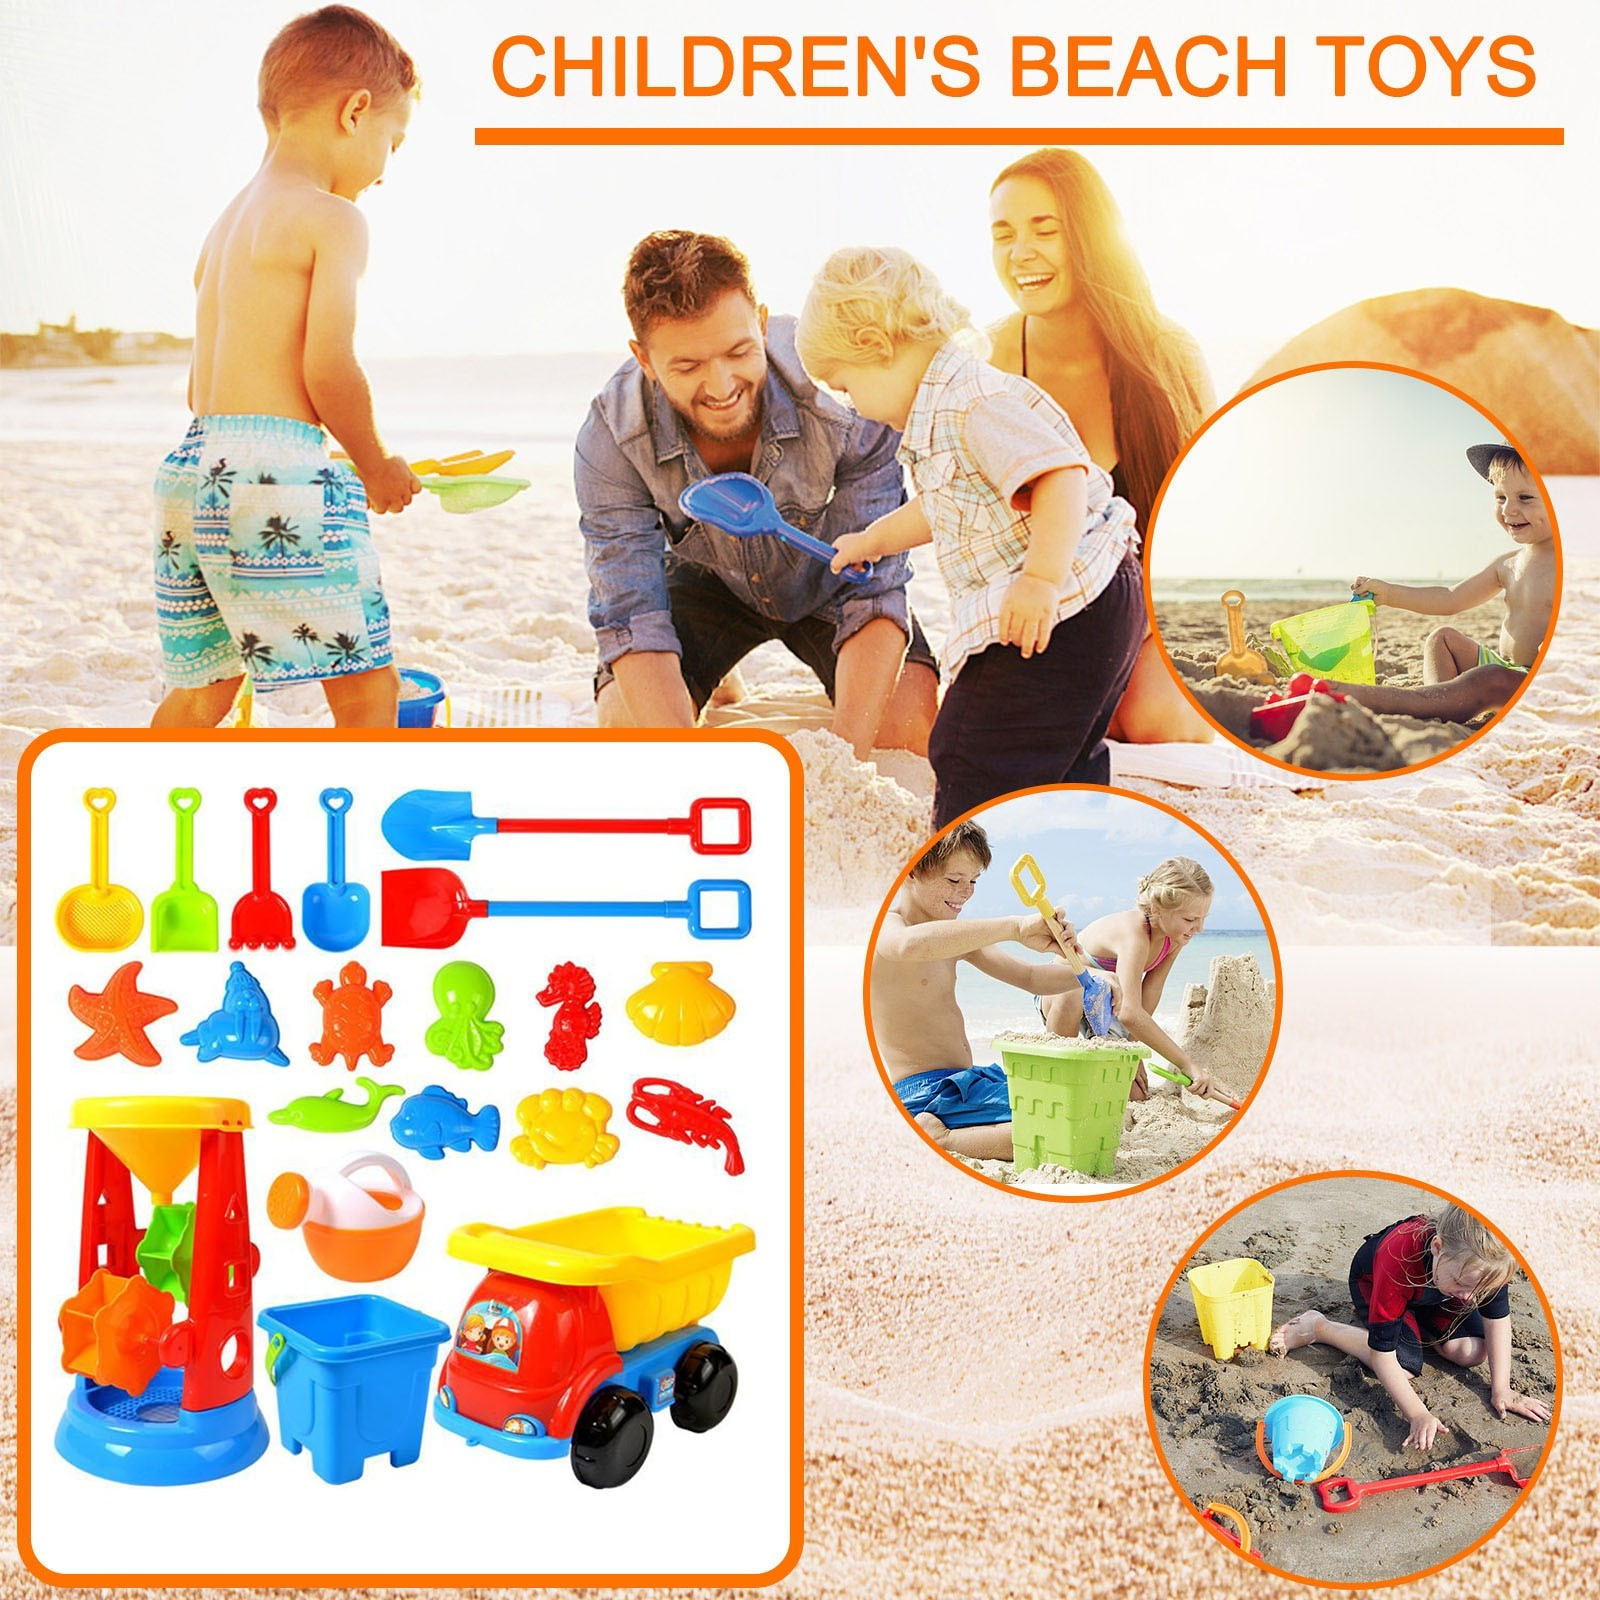 20 Piece Beach Toy Sand Set Sand Play Sandpit Toy Summer Outdoor Toy Educational Kids Beach Bath Toys Beach Play Sand Water Sale starry sky sand beach toy 18 piece sand set magic space clay sand puzzle power toys